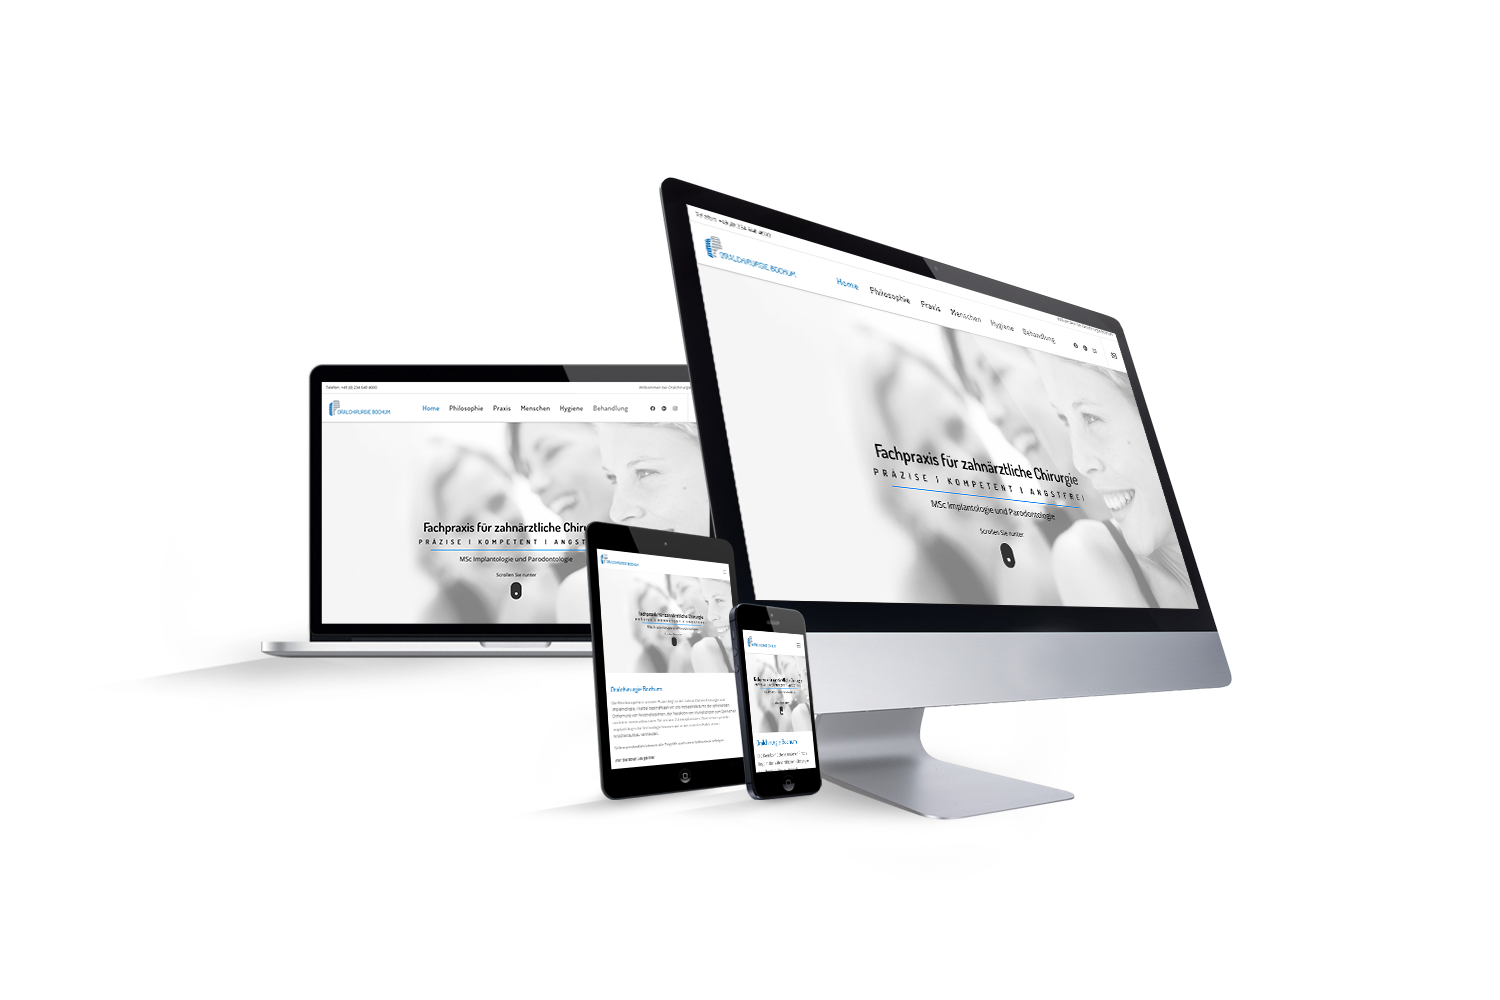 Oralchirurgie Bochum - Reference by Web N App Programming